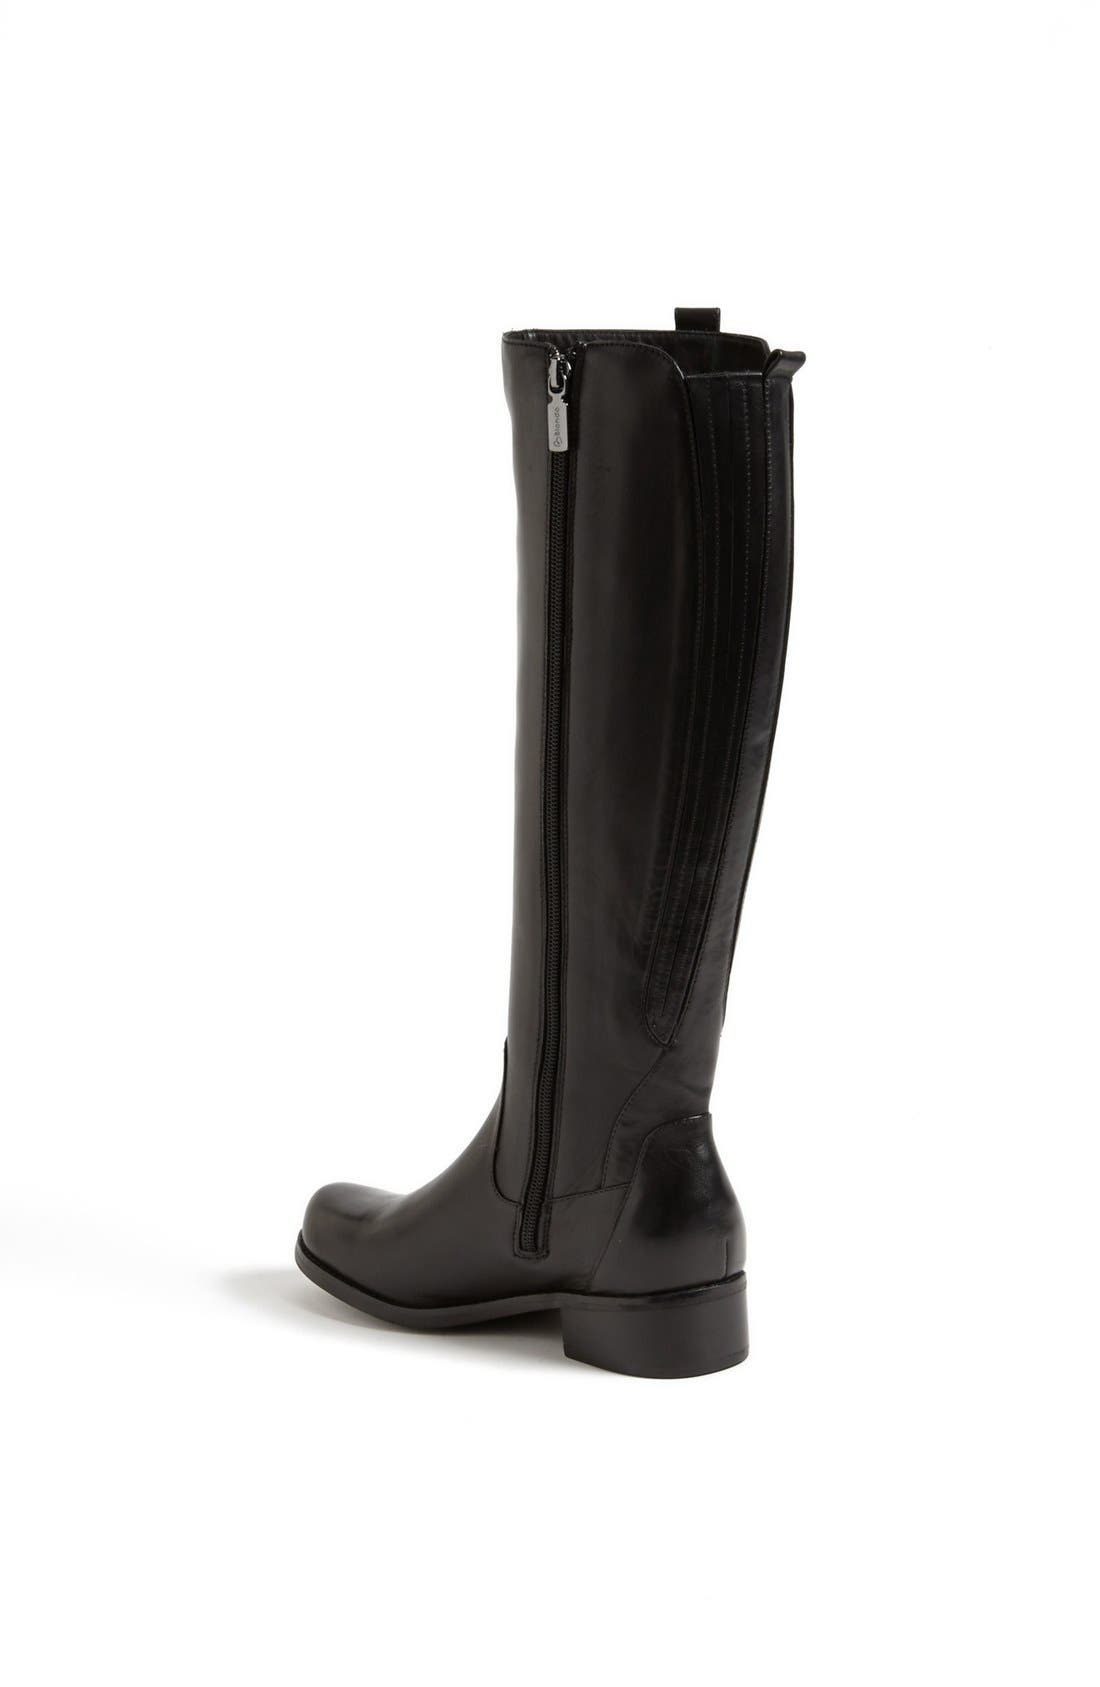 'Venise' Waterproof Leather Riding Boot,                             Alternate thumbnail 2, color,                             001